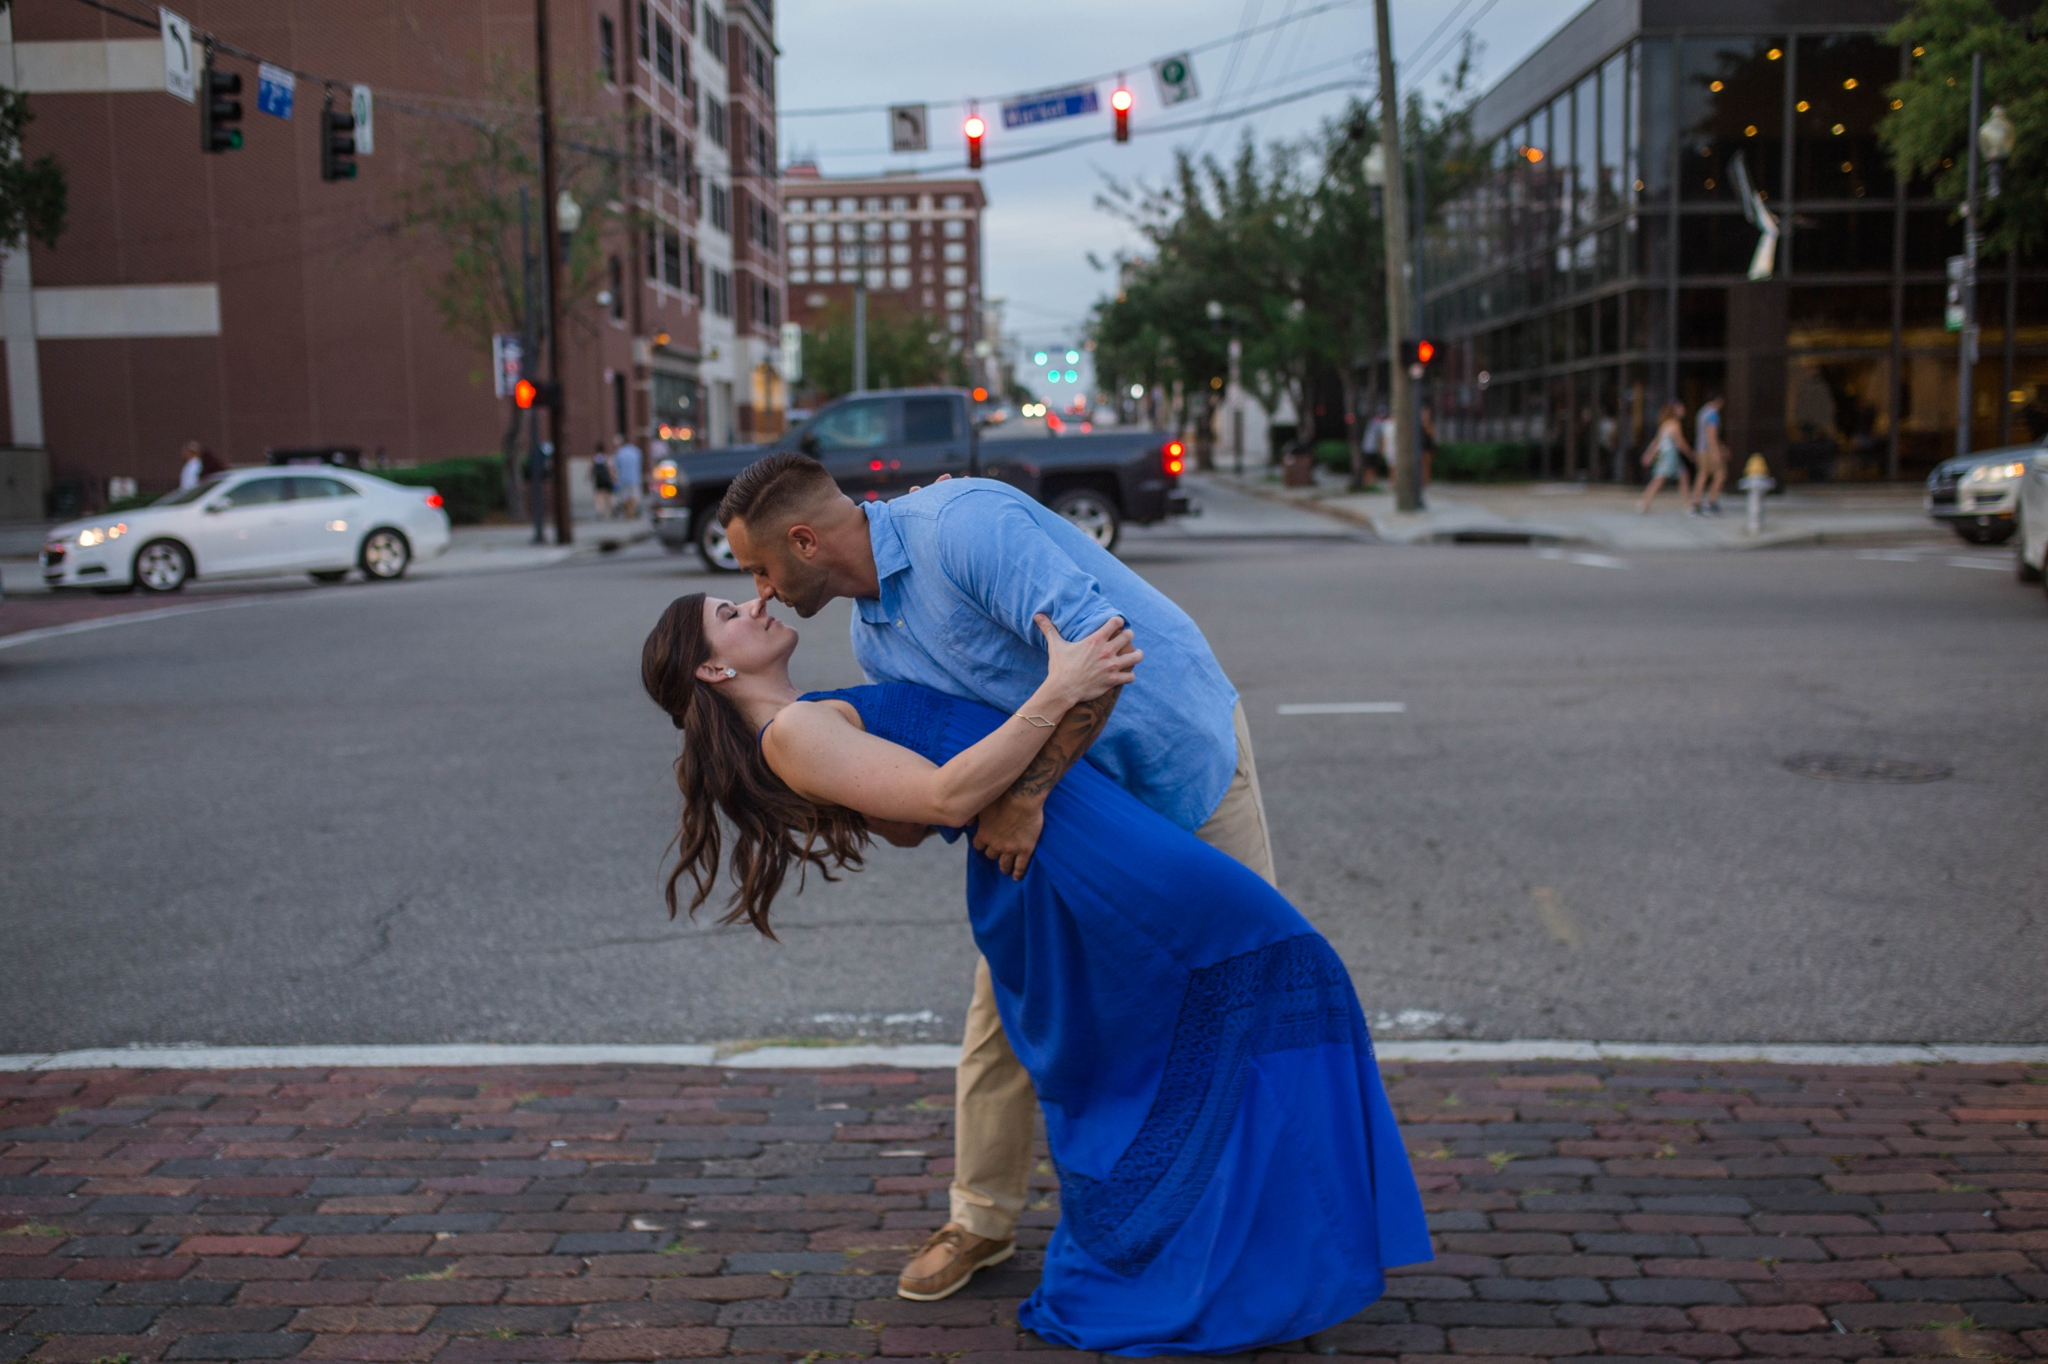 Engagement Photography Session in Downtown Wilmington, North Carolina - Wedding Photographer in NC  6.jpg